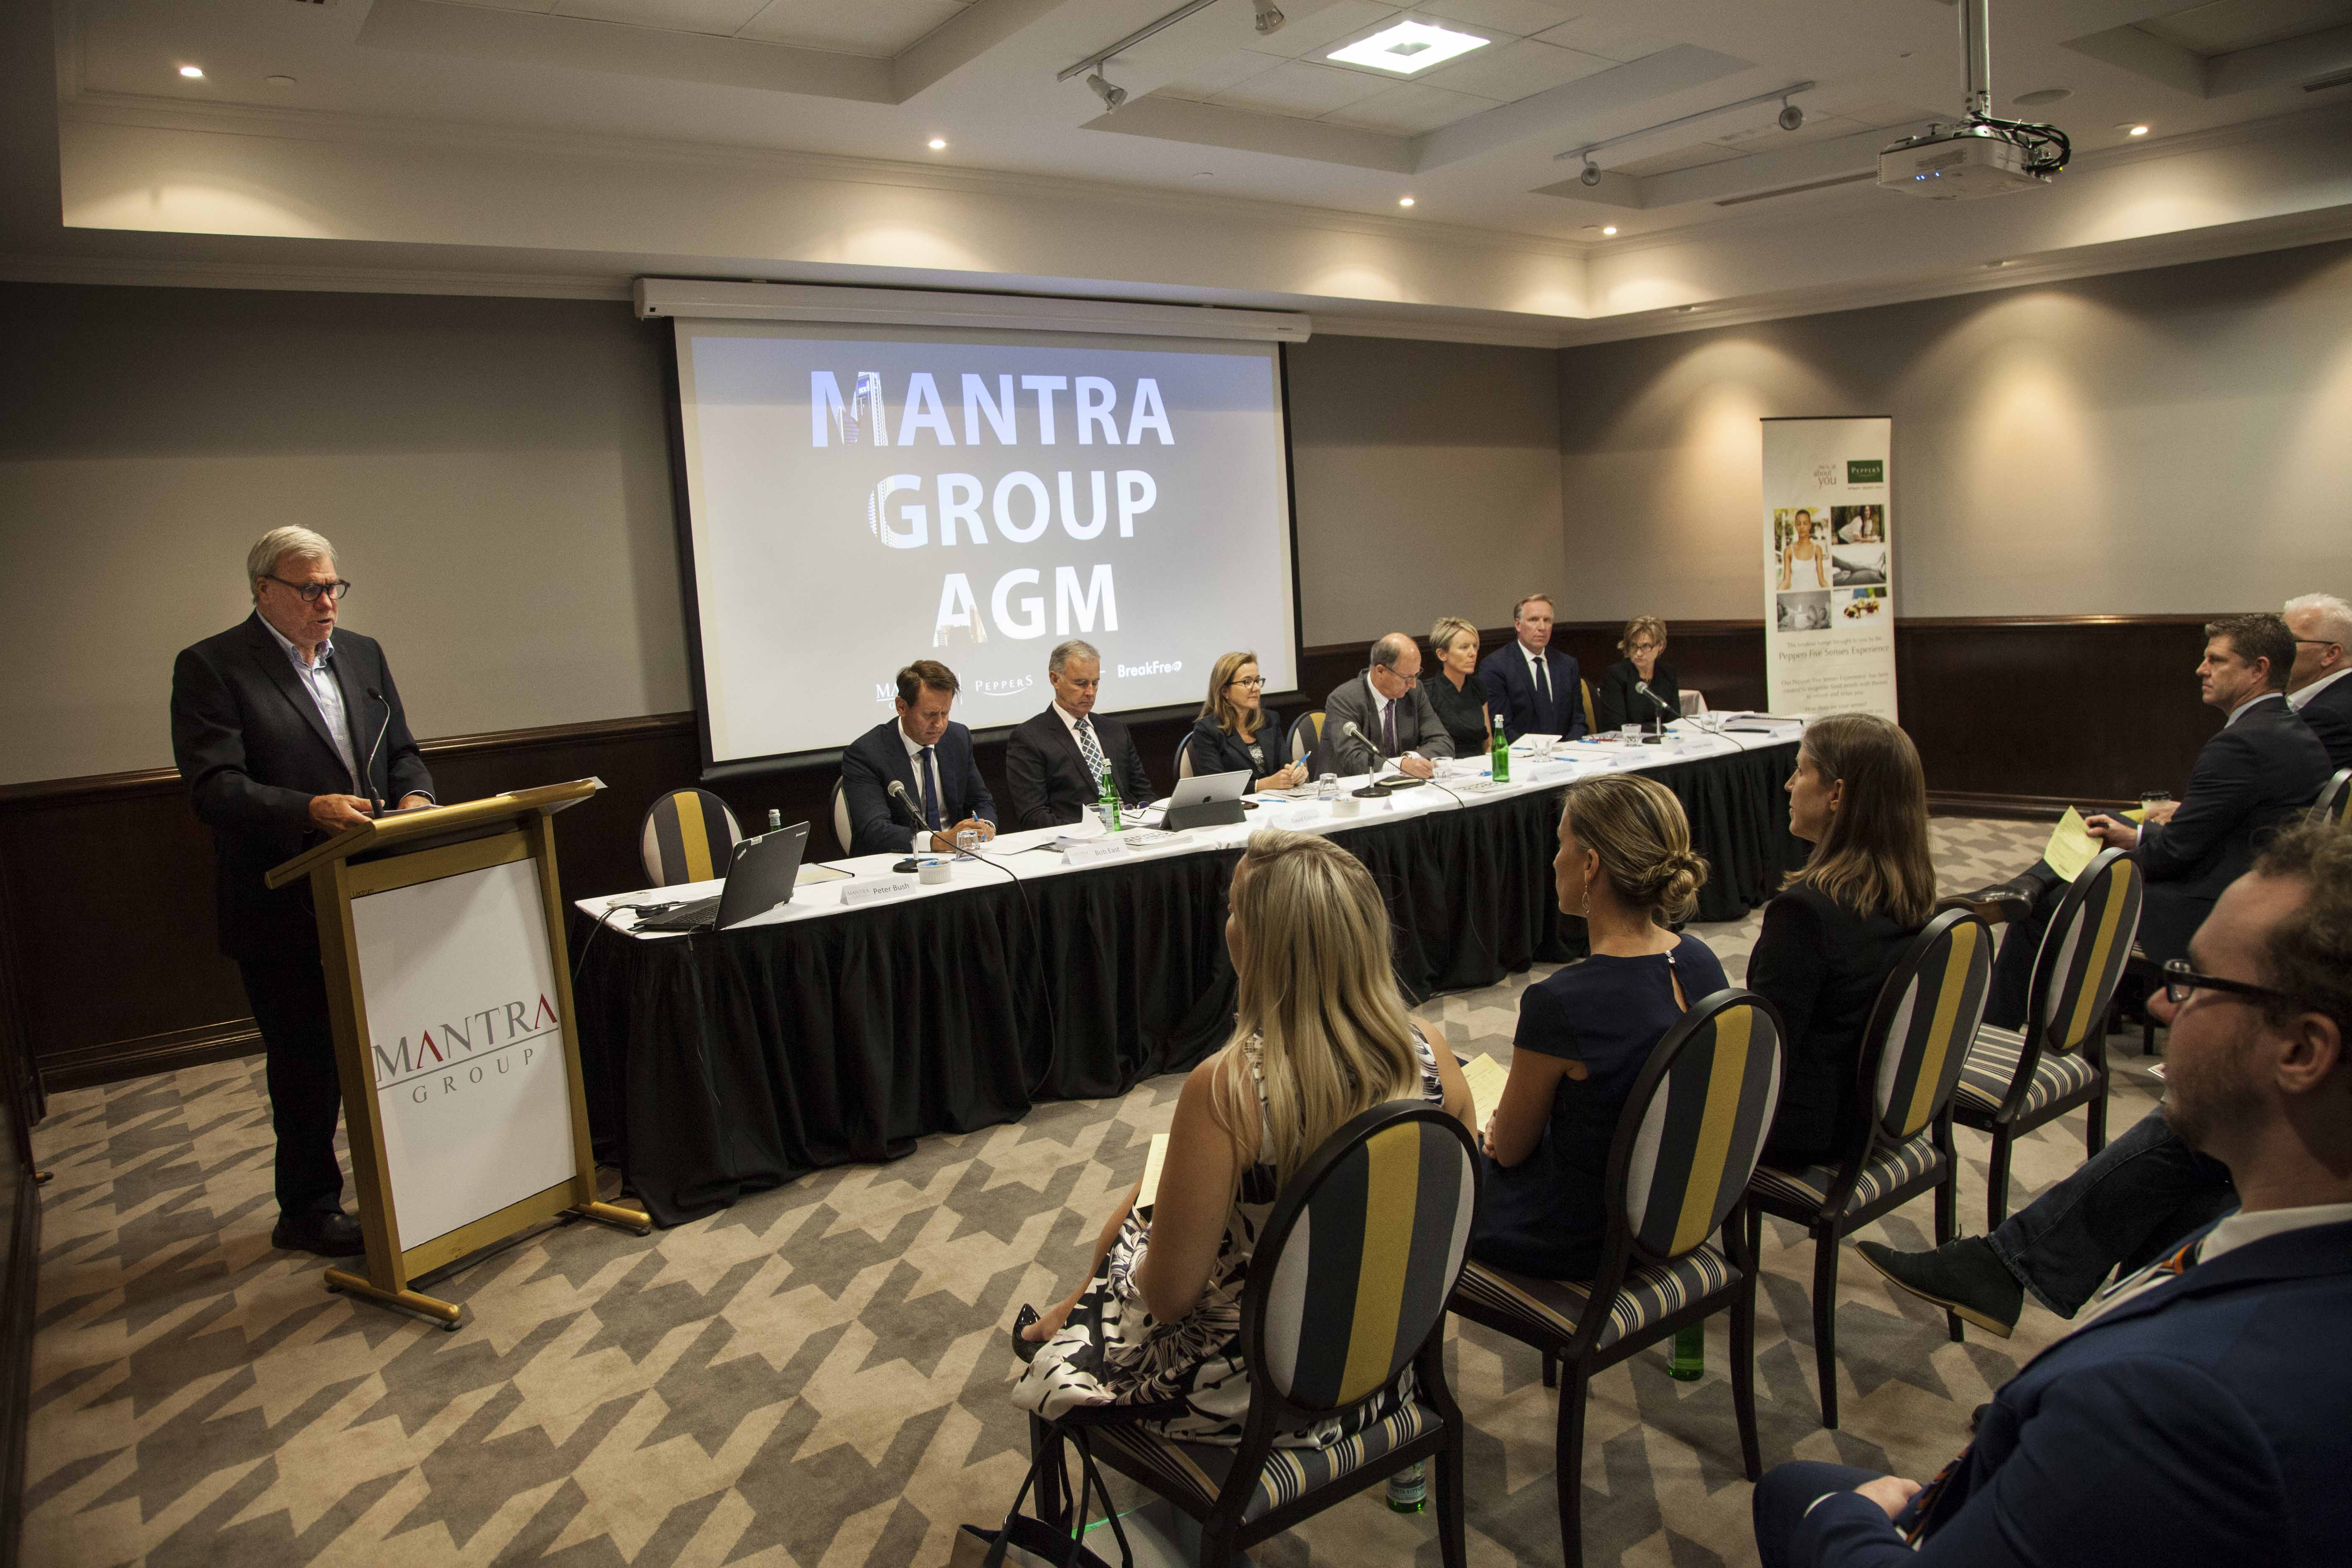 Mantra Group AGM - Peter Bush